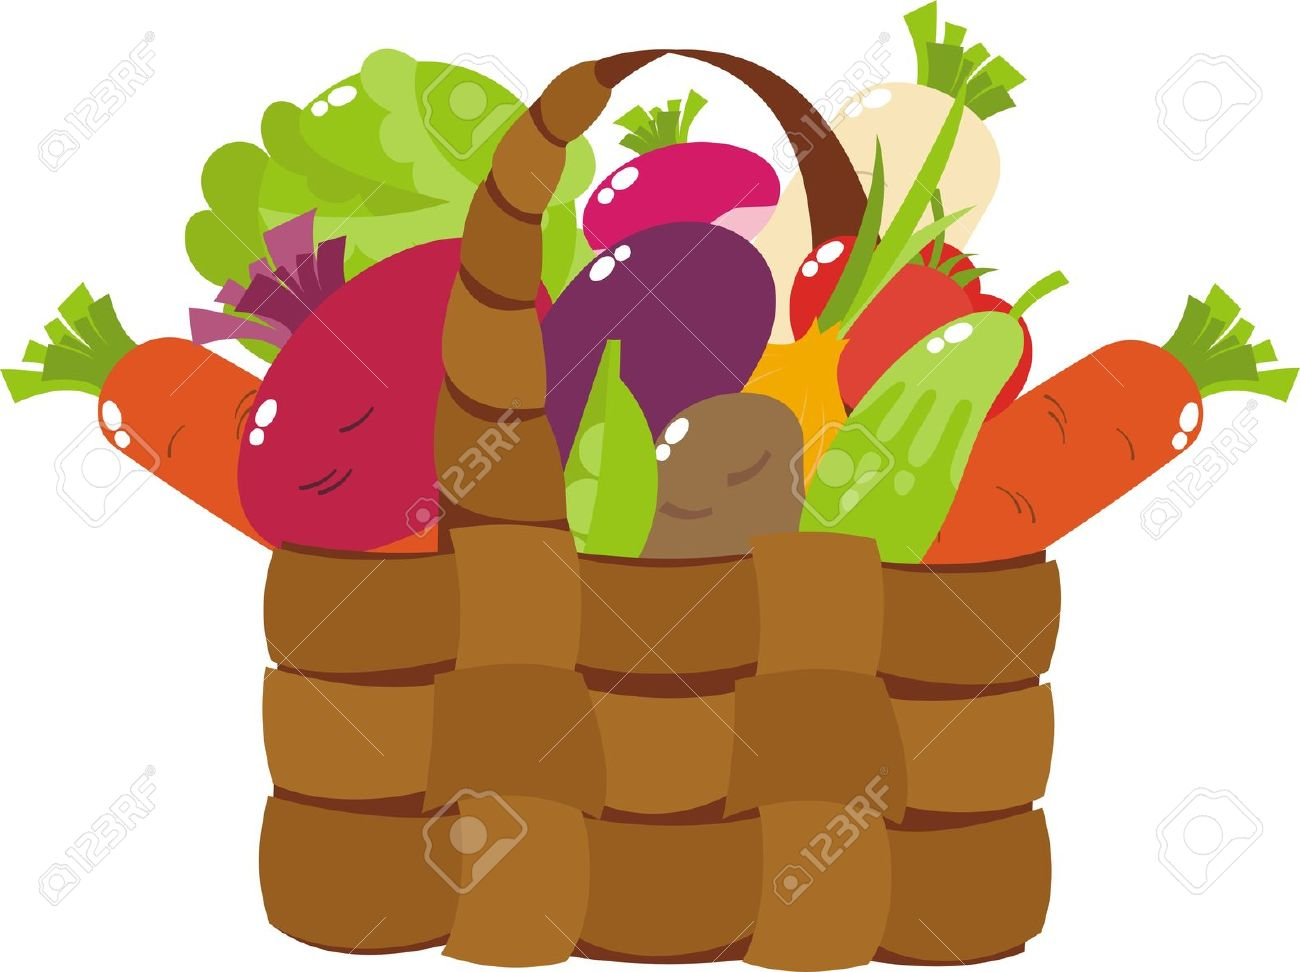 Basket Of Vegetables Clipart : With vegetables clipart panda free